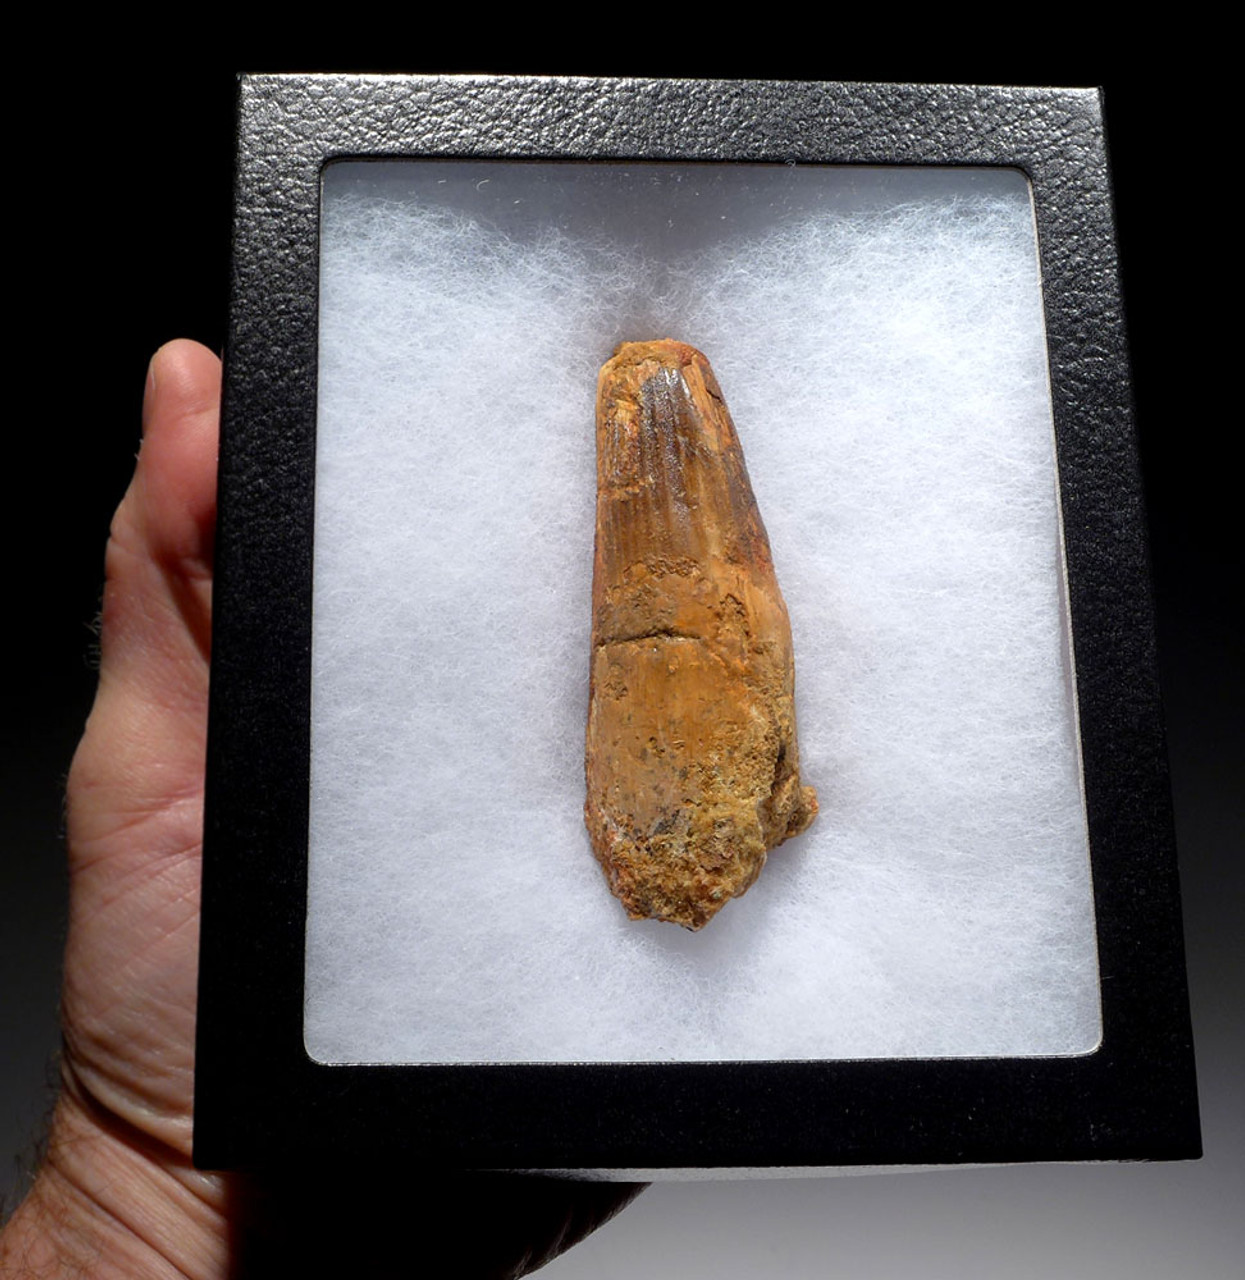 LARGE AND UGLY 3.5 INCH SPINOSAURUS DINOSAUR FOSSIL TOOTH *DT5-386